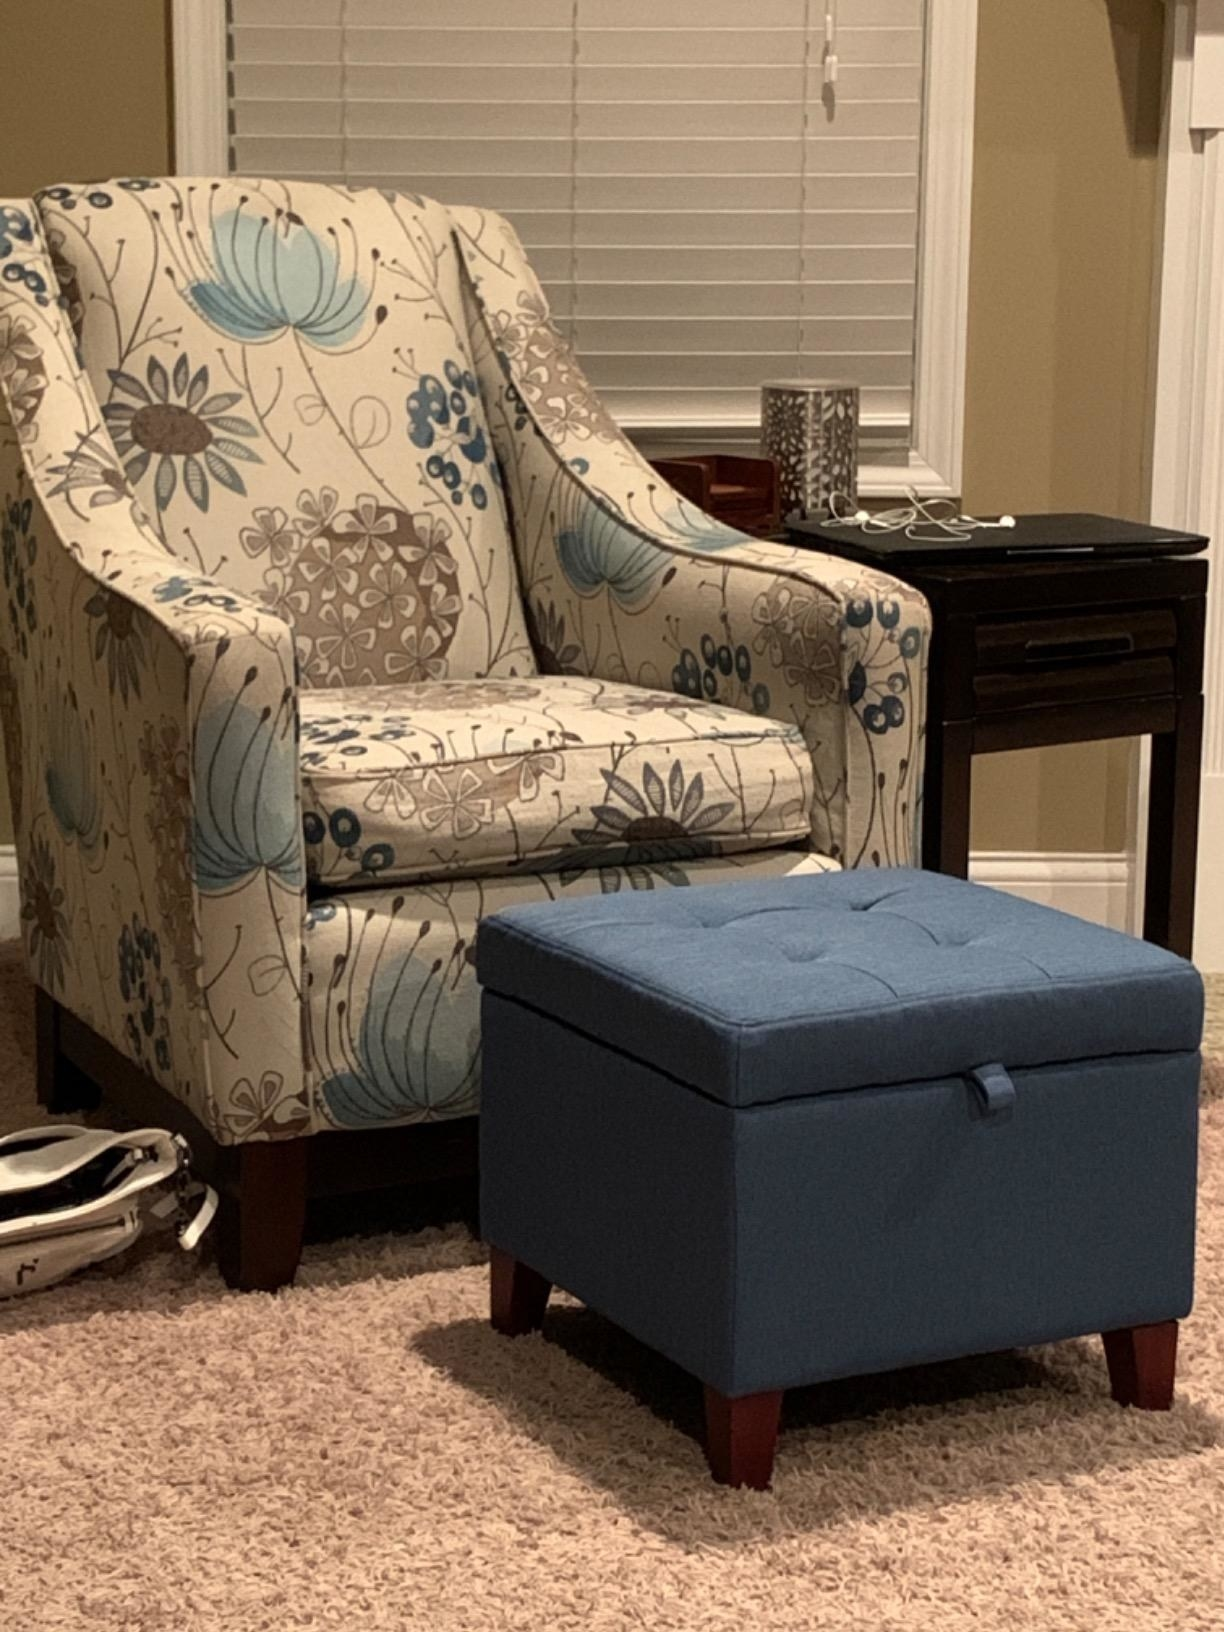 reviewer image of the deep blue adeco square storage ottoman in front of a floral armchair